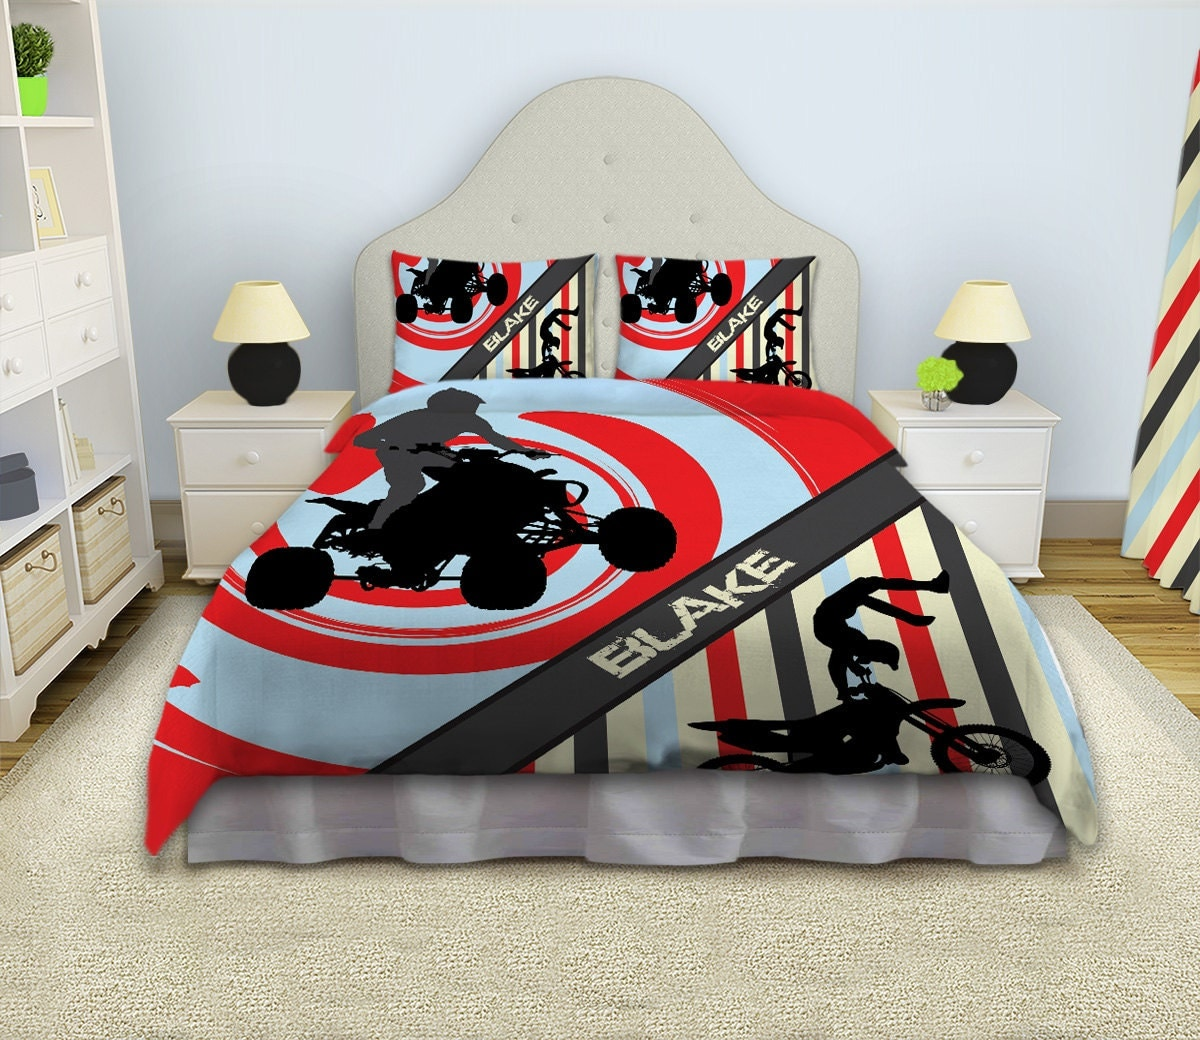 Motocross comforter dirt bike bedding by eloquentinnovations for Dirt bike bedroom ideas